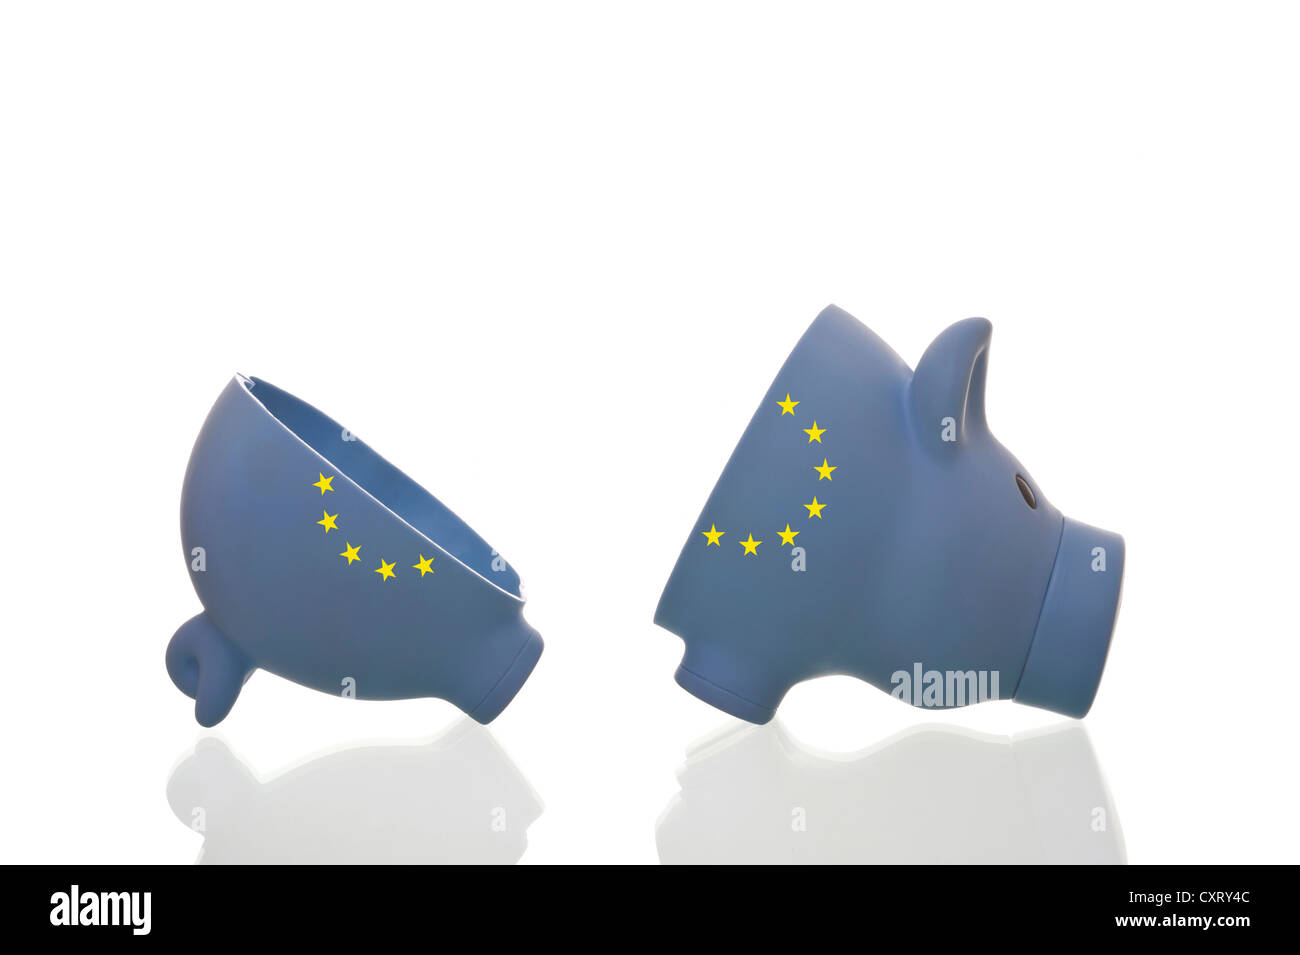 Halved piggy bank with European stars, symbolic image - Stock Image